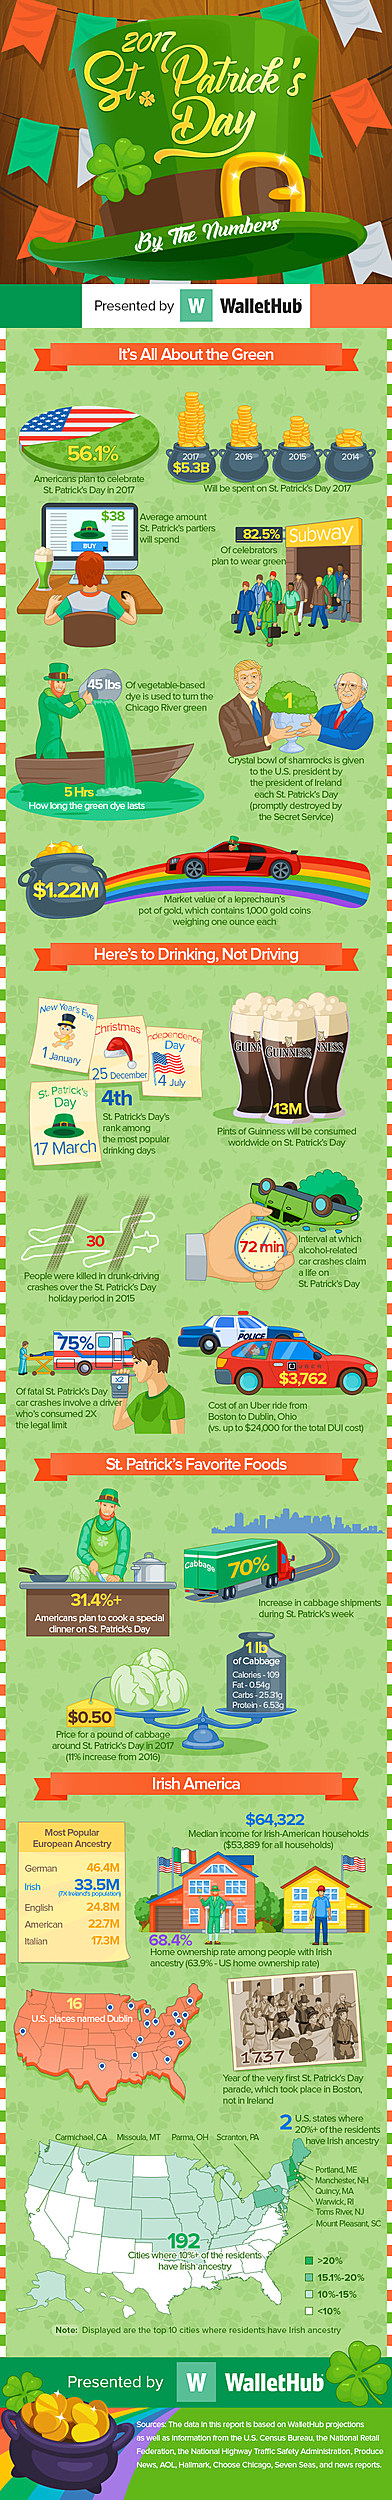 st-patricks-day-by-the-numbers-v4